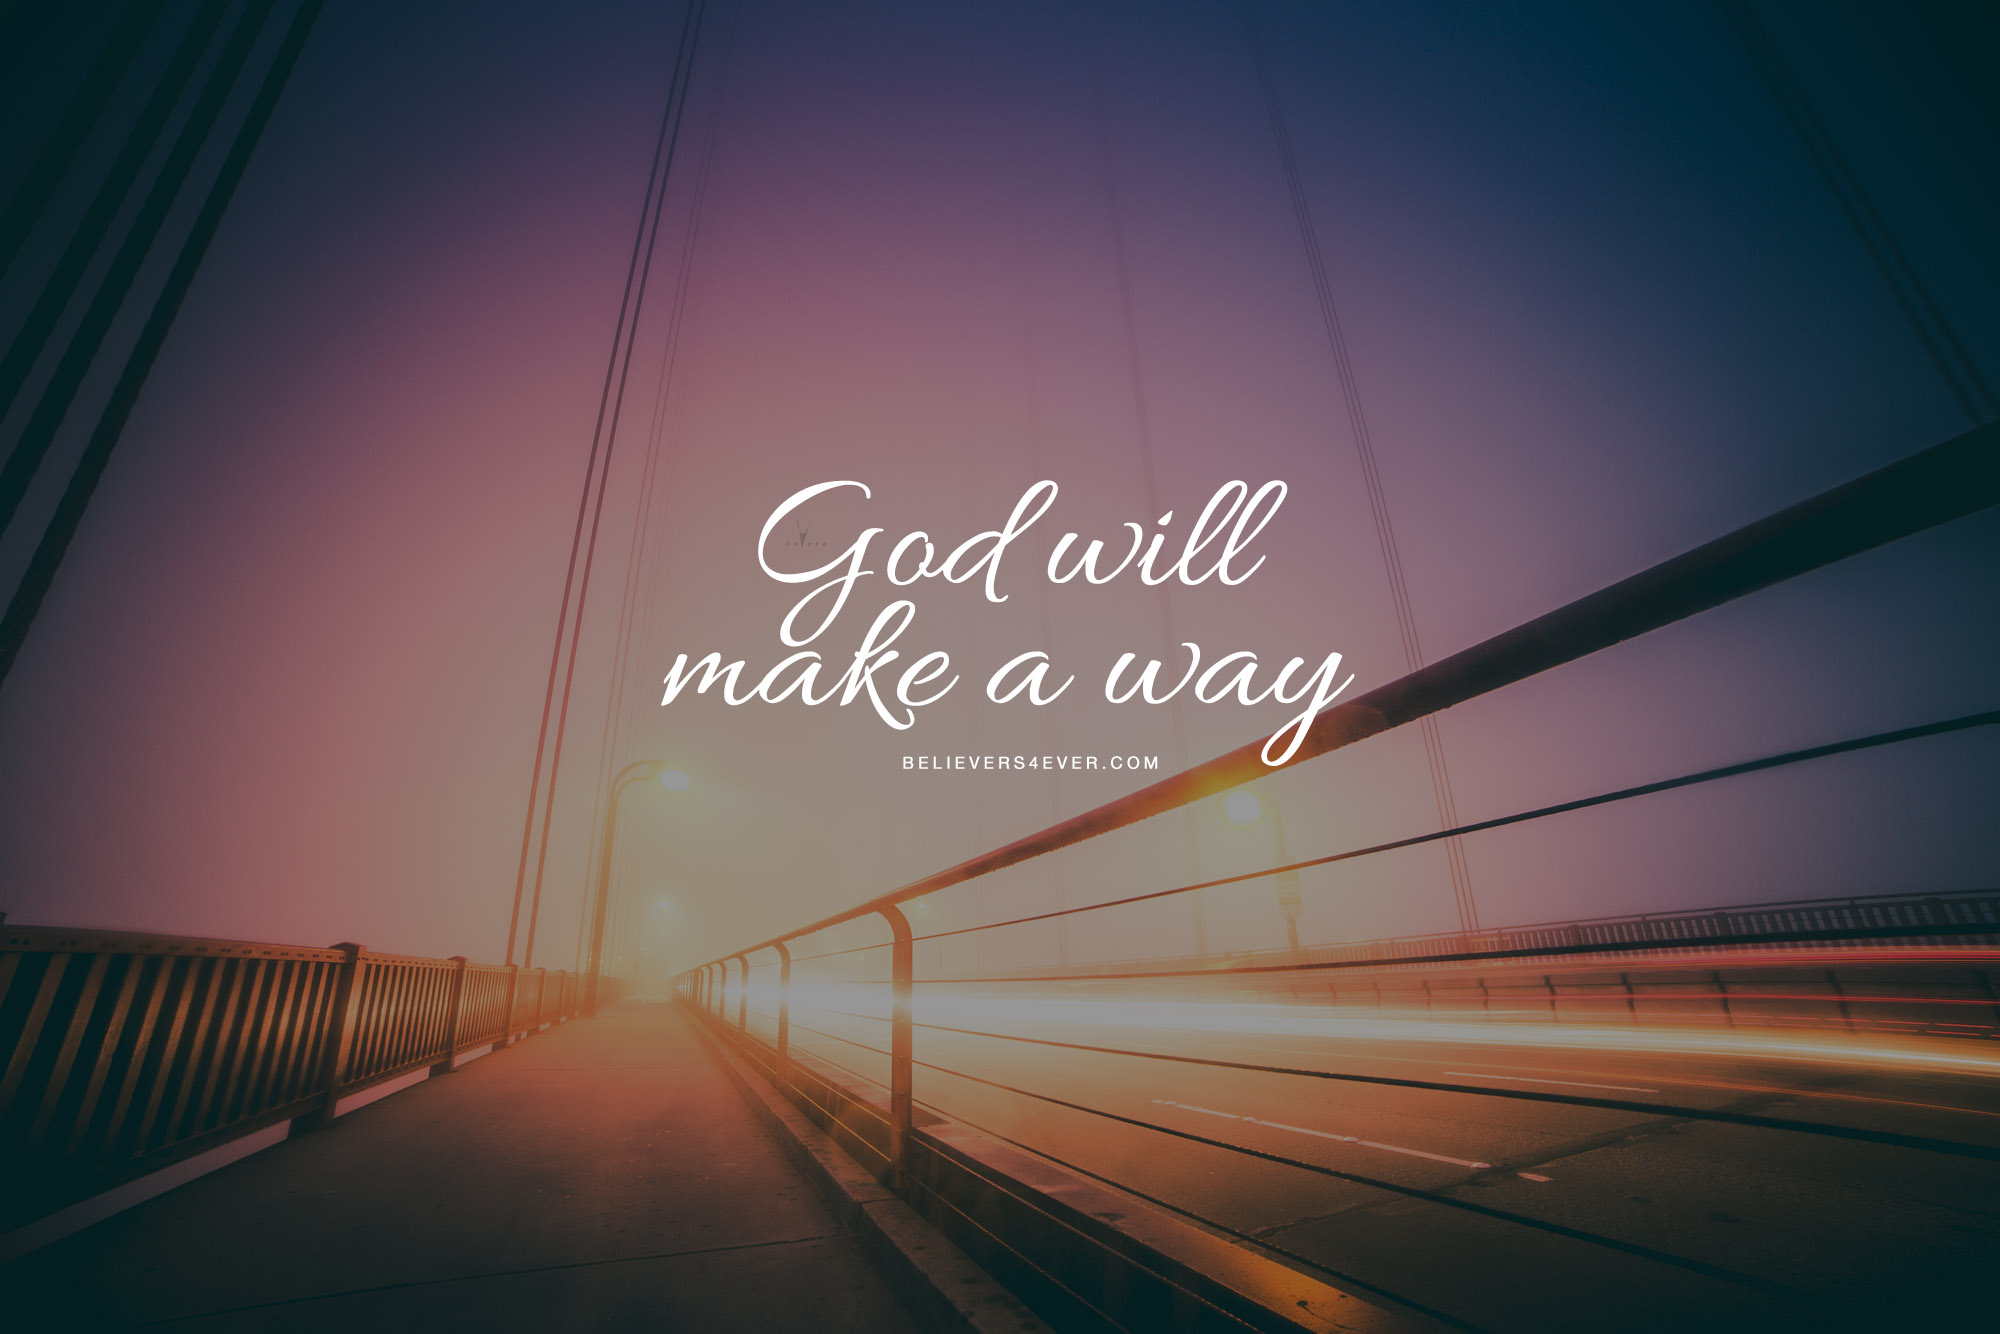 God will make a way desktop wallpaper